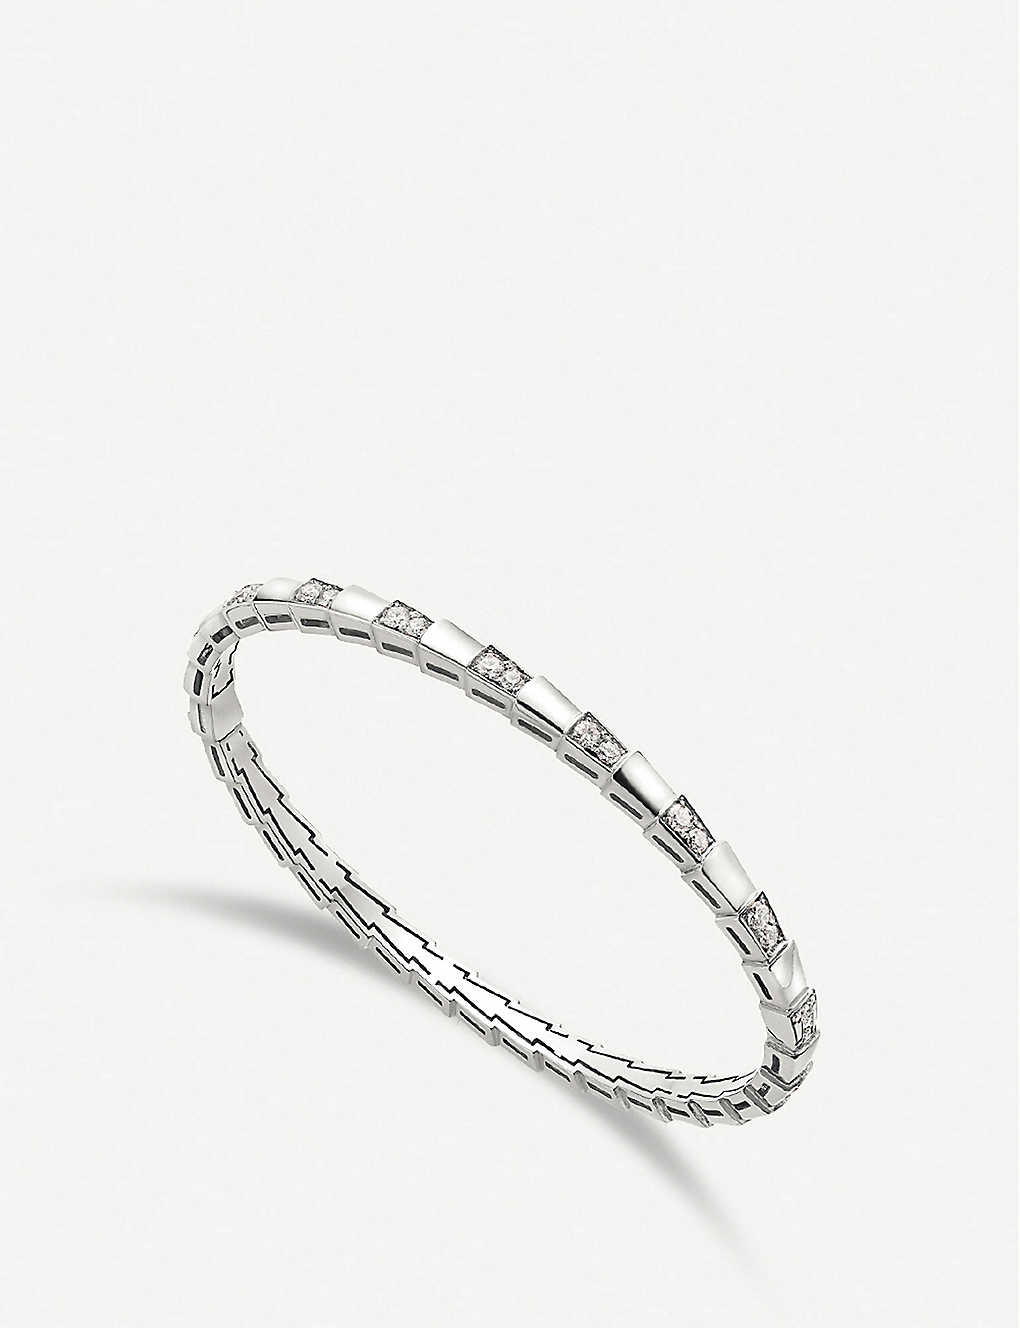 b19179c8acd6c BVLGARI - Serpenti Viper 18kt white-gold and diamond bracelet ...